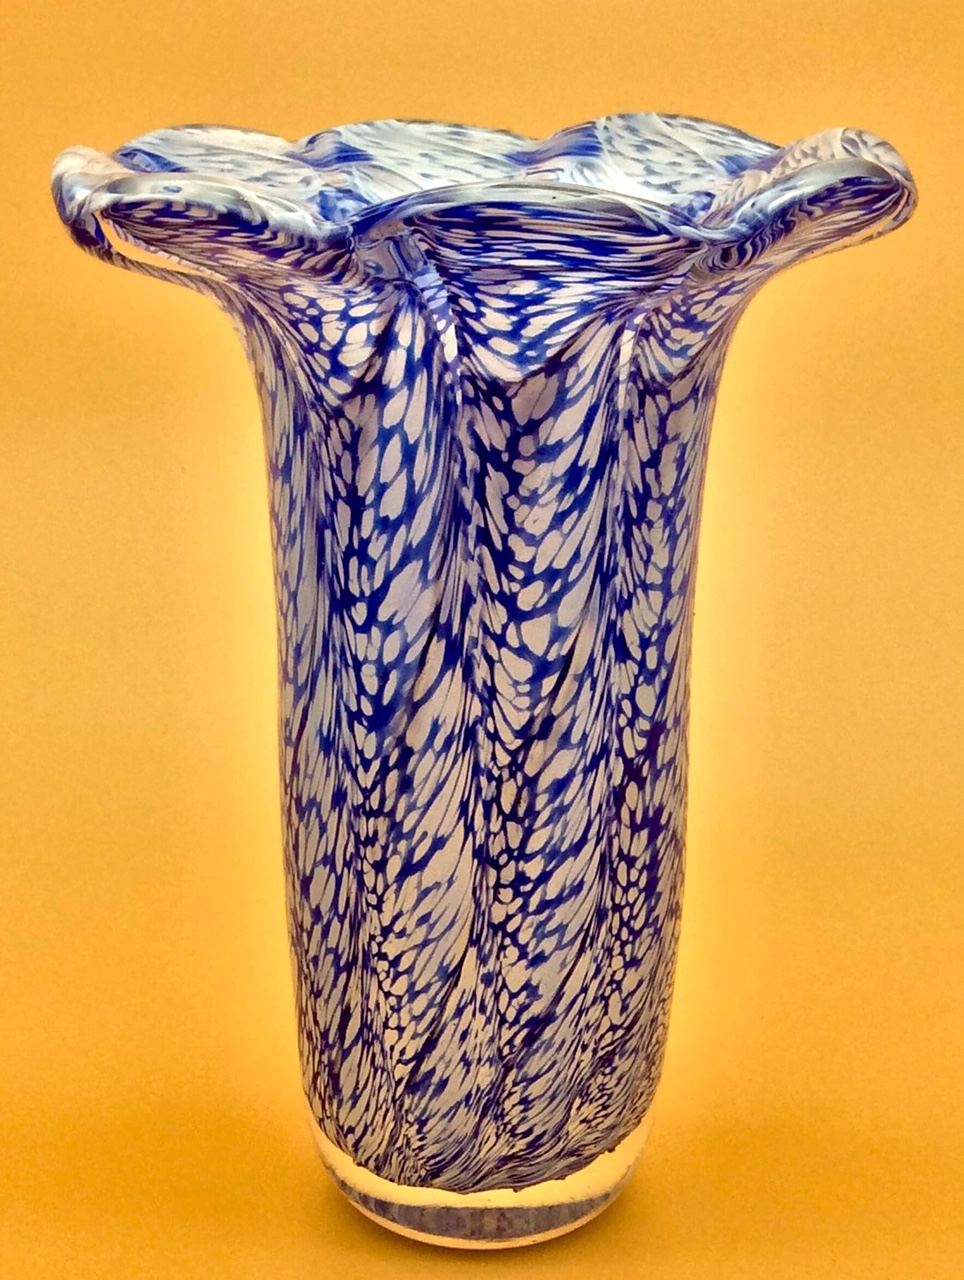 terry bloodworth vase.JPG